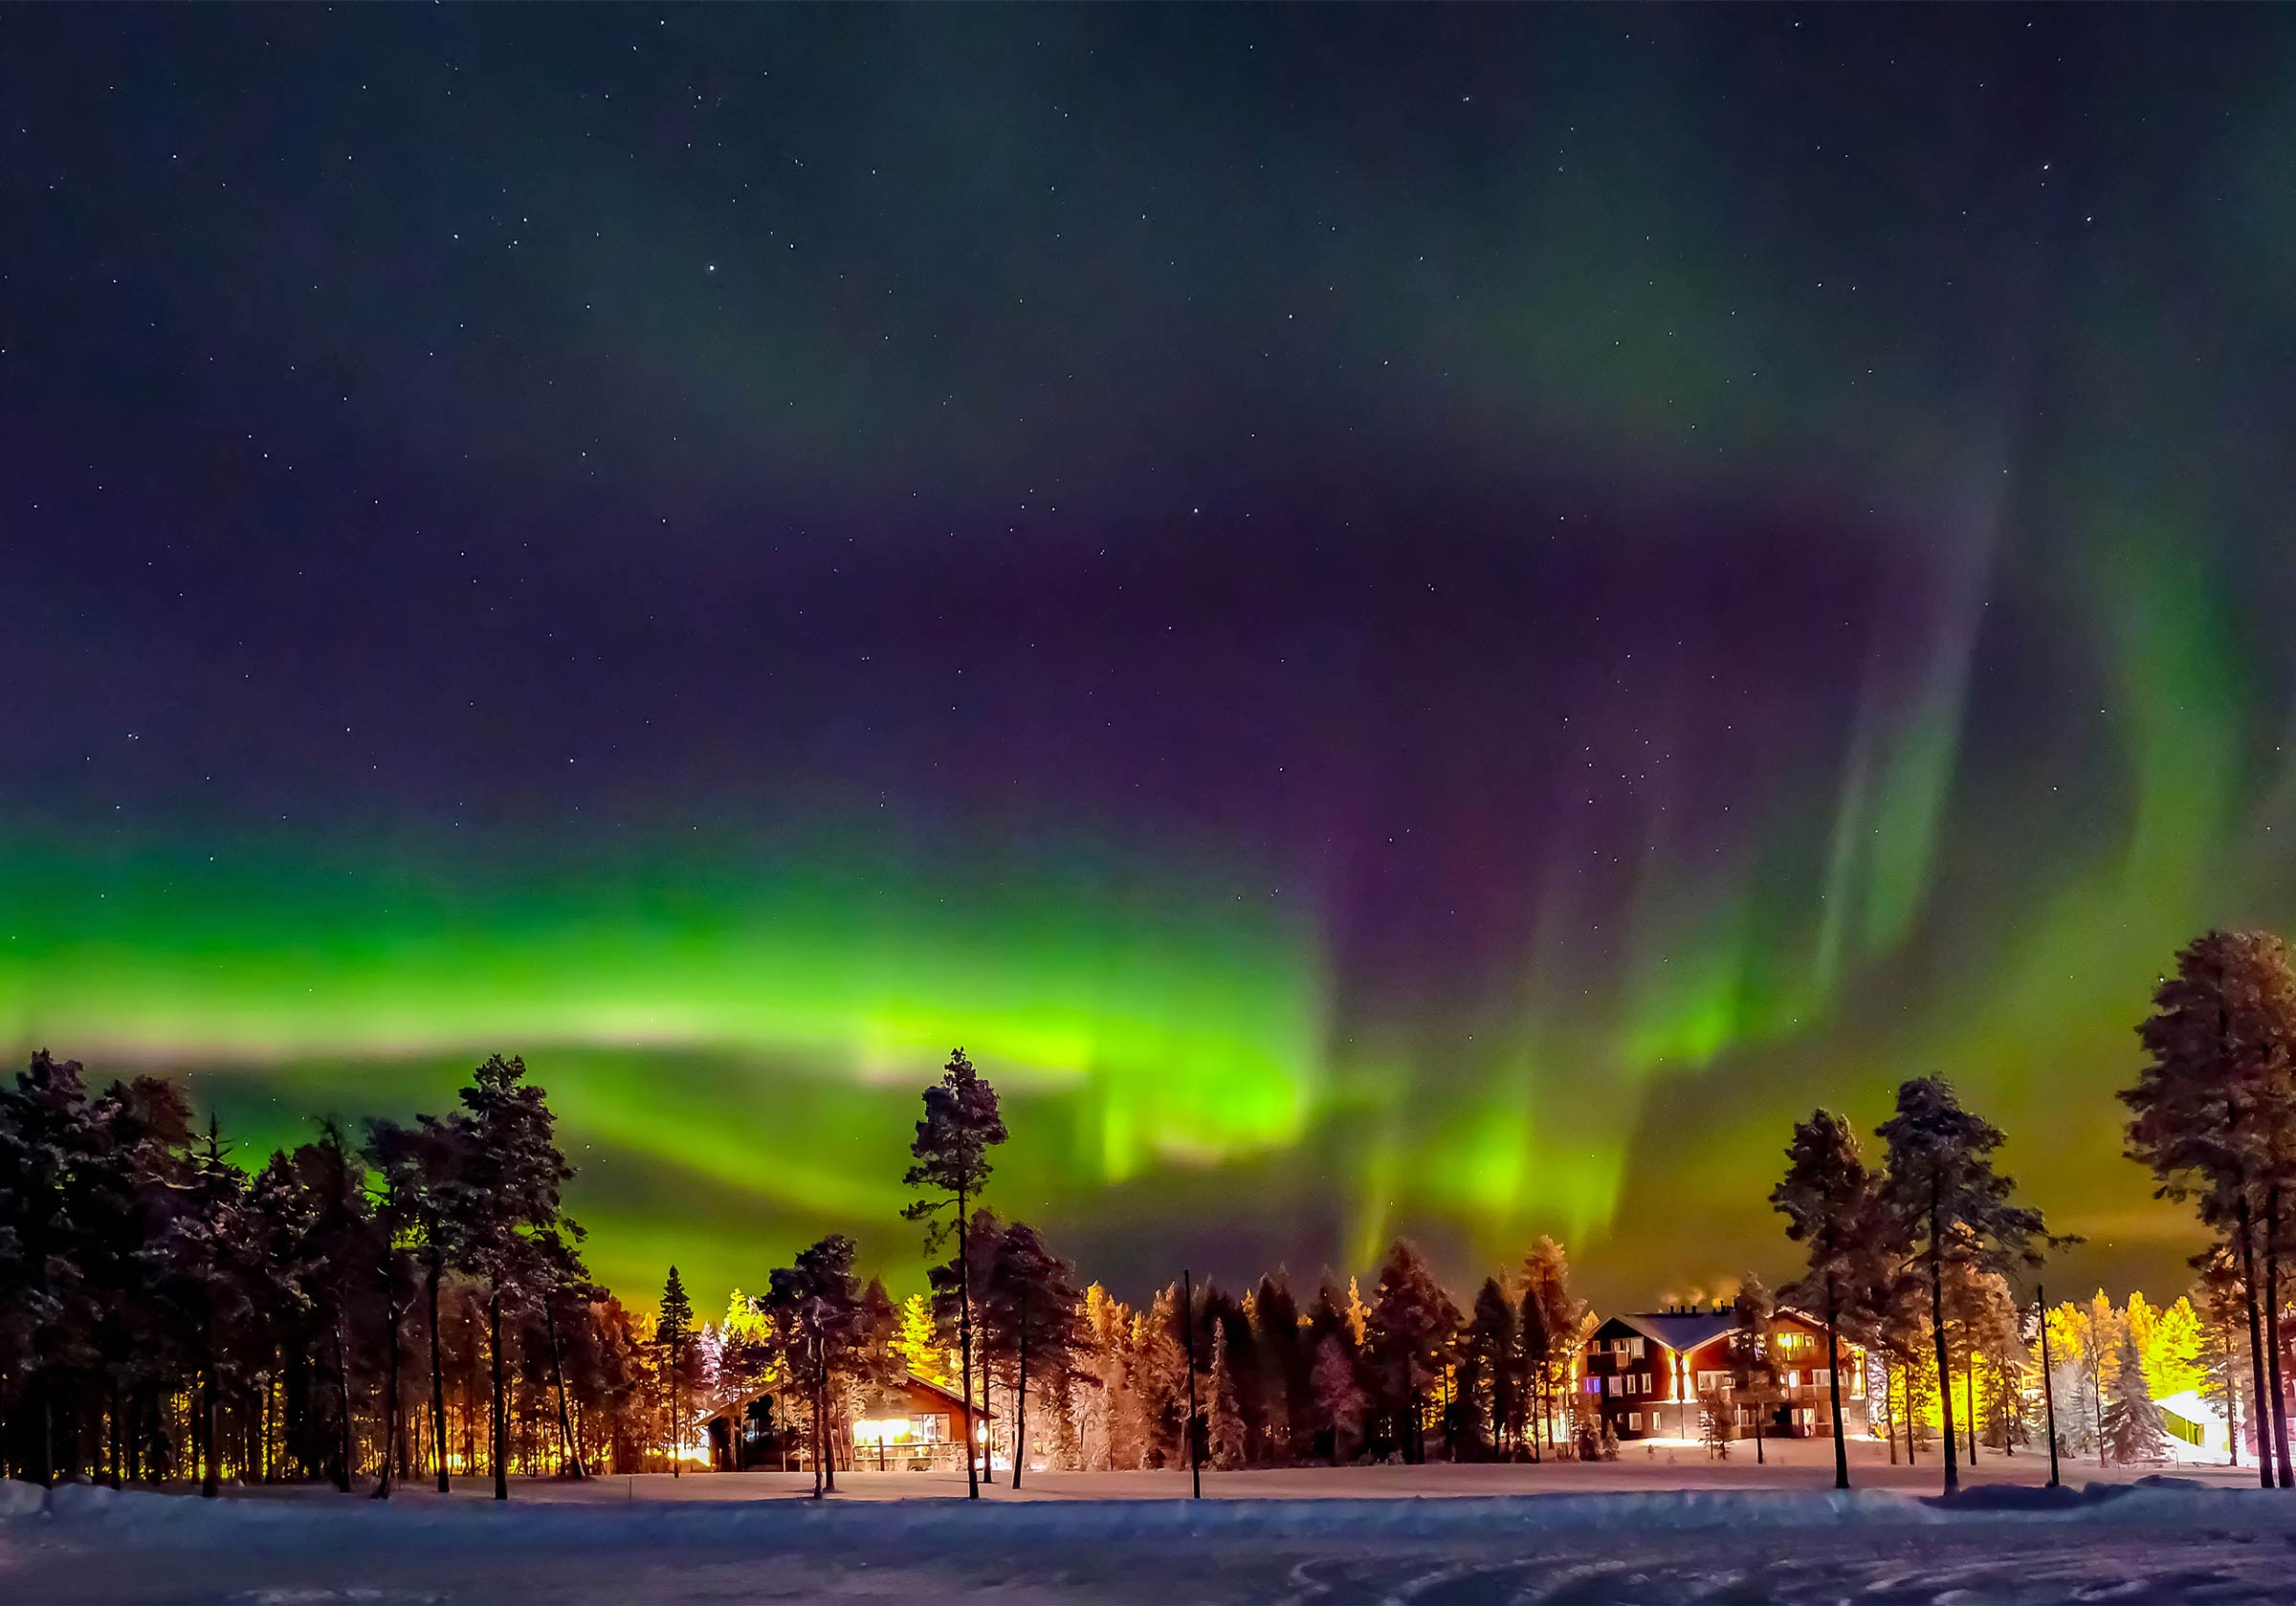 Northern lights with a town in the distance in Lapland, Finland